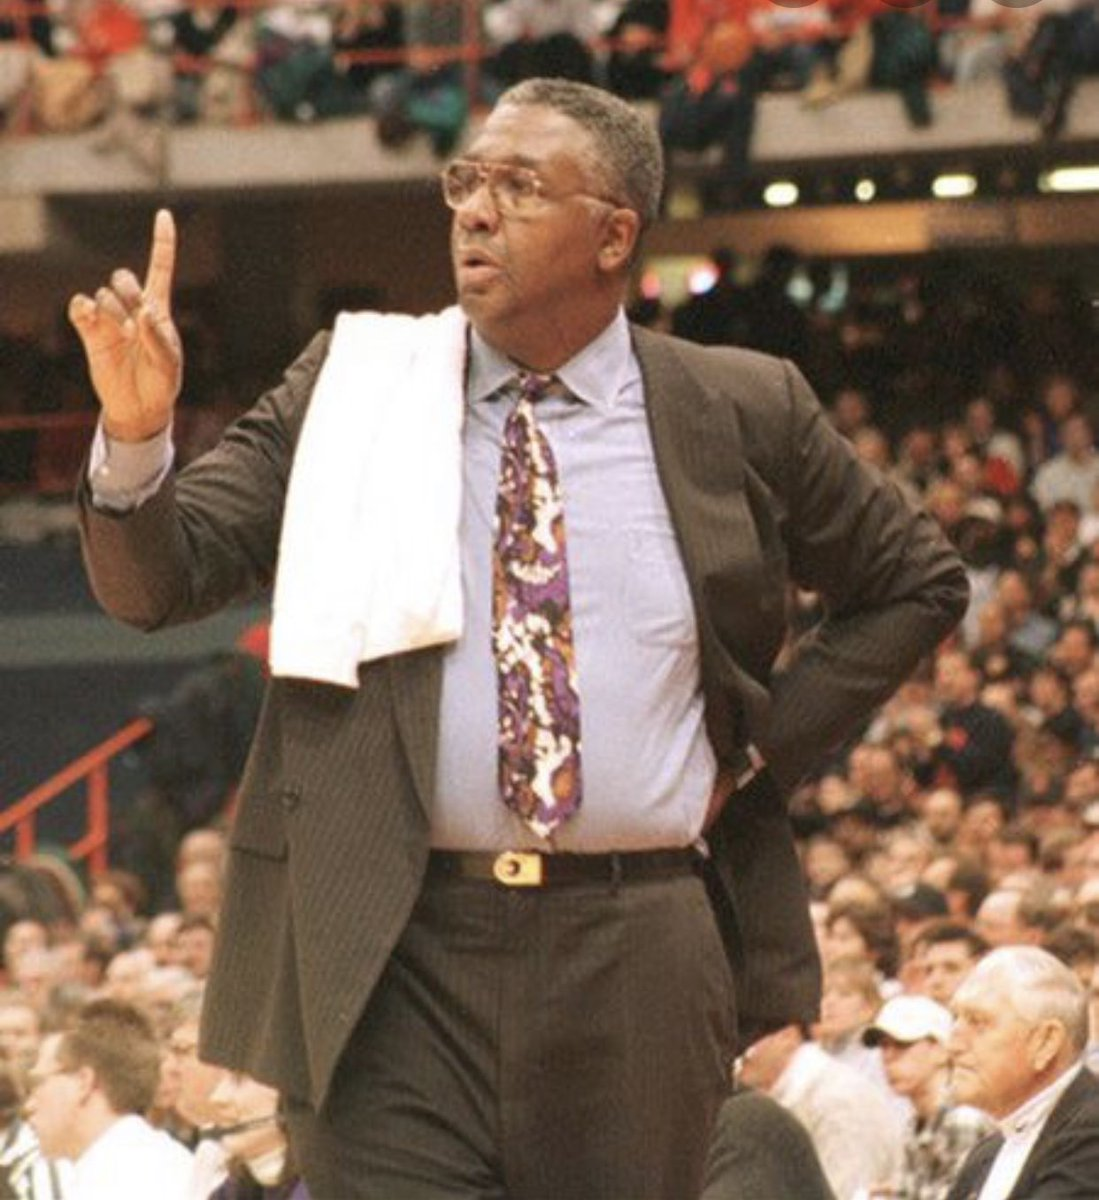 He gave young black men from across the country a chance to earn a world class education w/ a Gtown degree and a masters in life skills. He built Gtown into a basketball power and carried the Big East w/ him while fighting against racism and educational inequality. LEGACY!